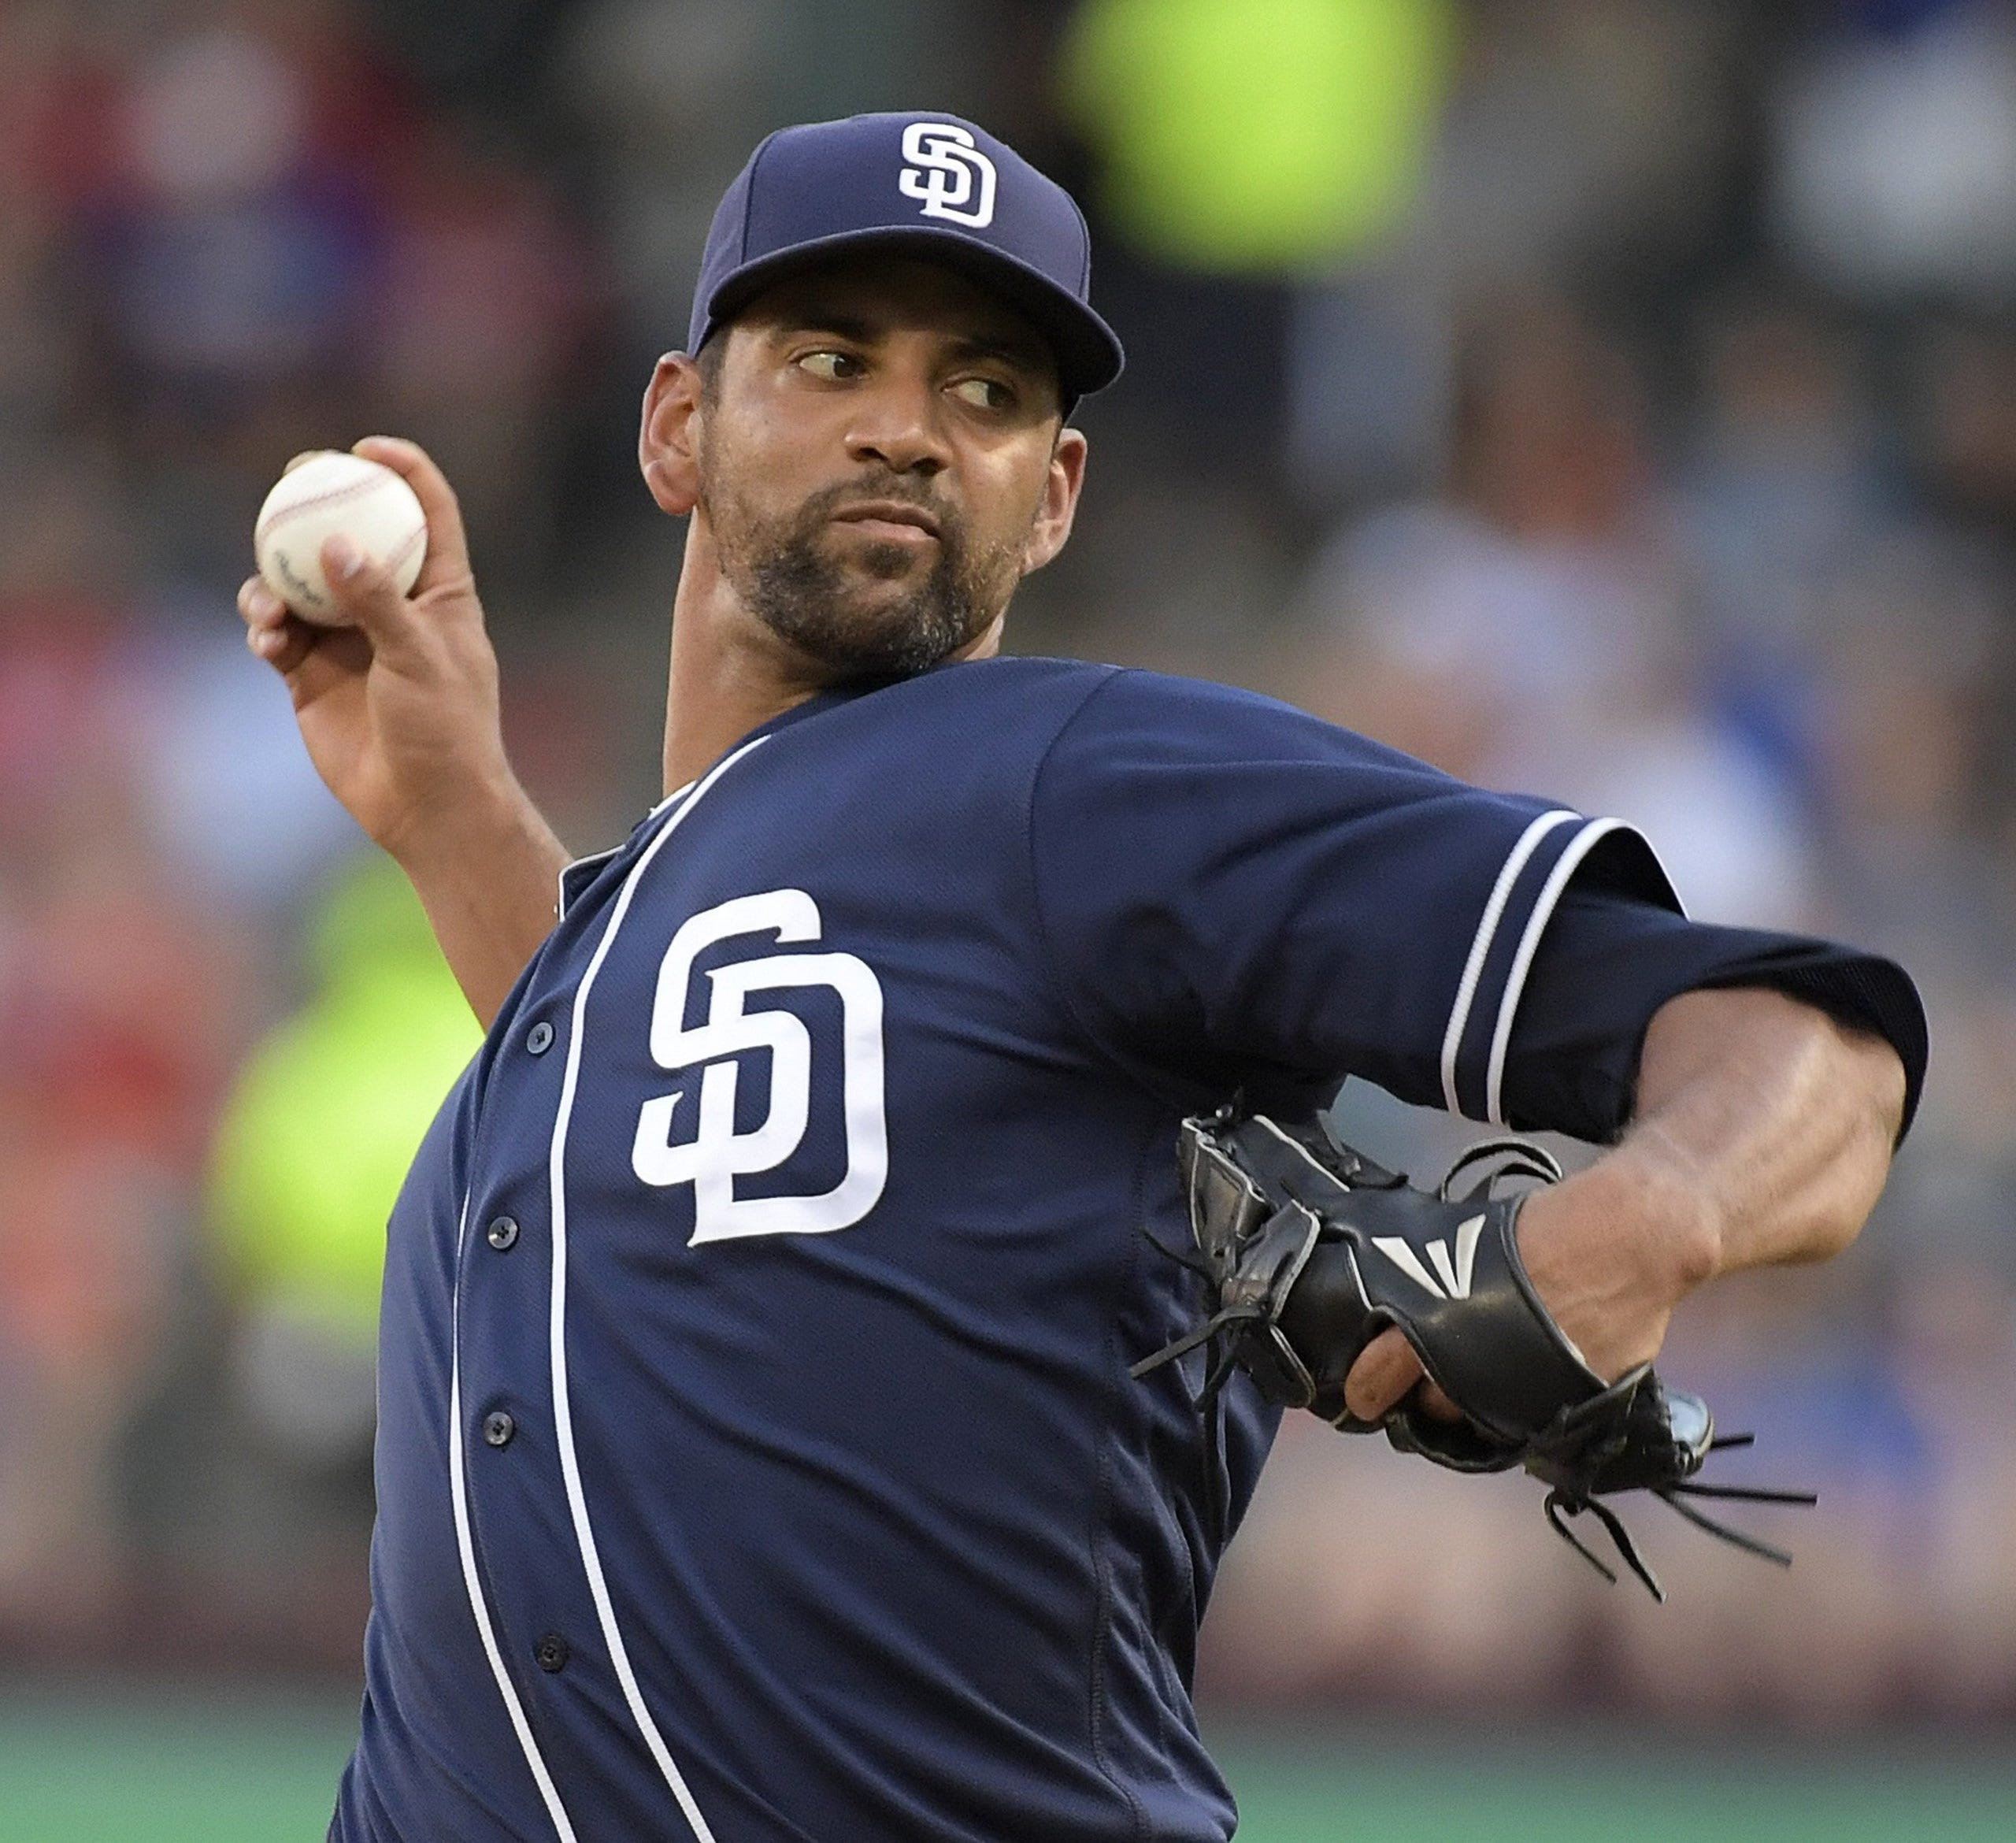 Tyson Ross went 8-9 with a 4.15 ERA in 31 games (23 starts) between San Diego and St. Louis last season.